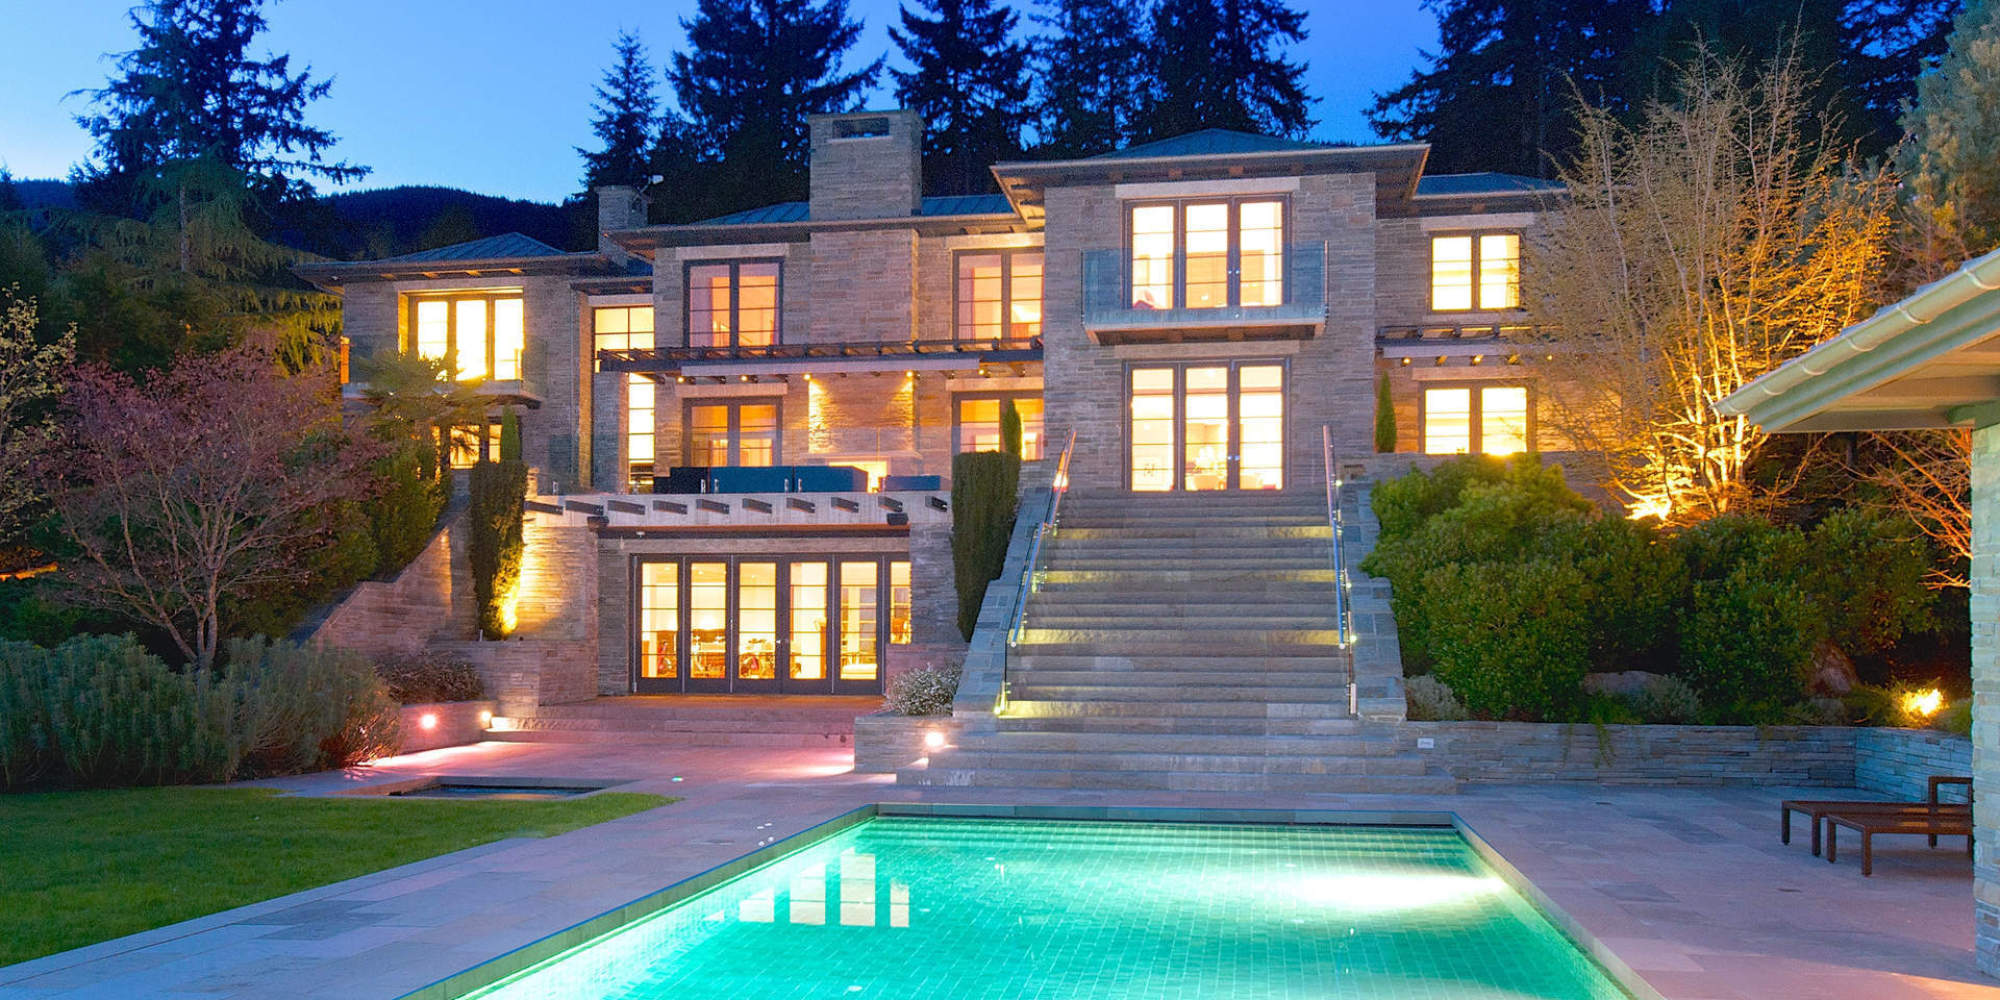 Mobile Homes For Sale Alberta >> Vancouver Real Estate: Jaw-Dropping West Van Mansion For Sale (PHOTOS)